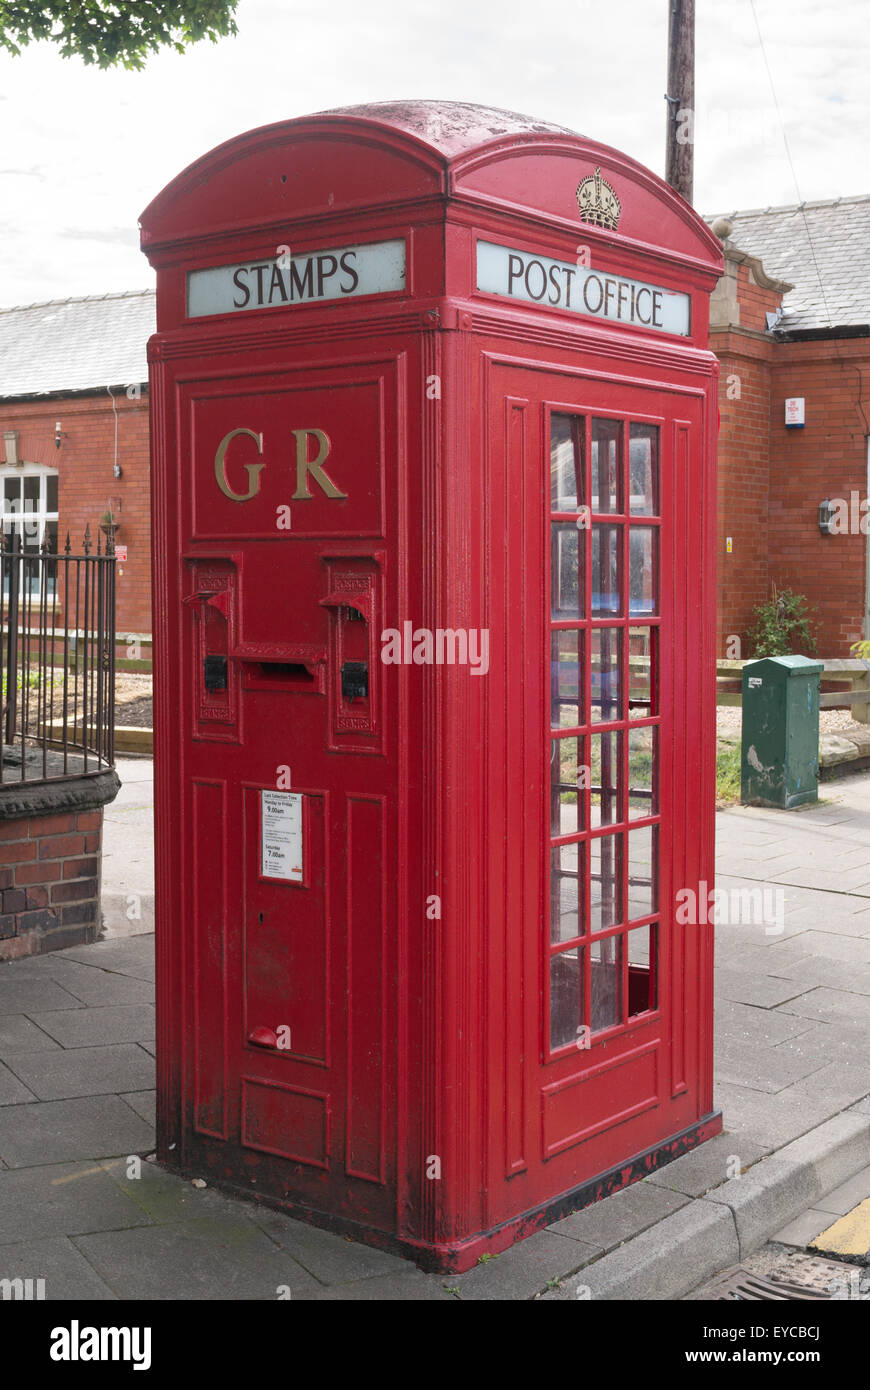 Unusual 1930s combined telephone kiosk and post box with stamp machines, Post Office K4 design, Whitley Bay, North - Stock Image